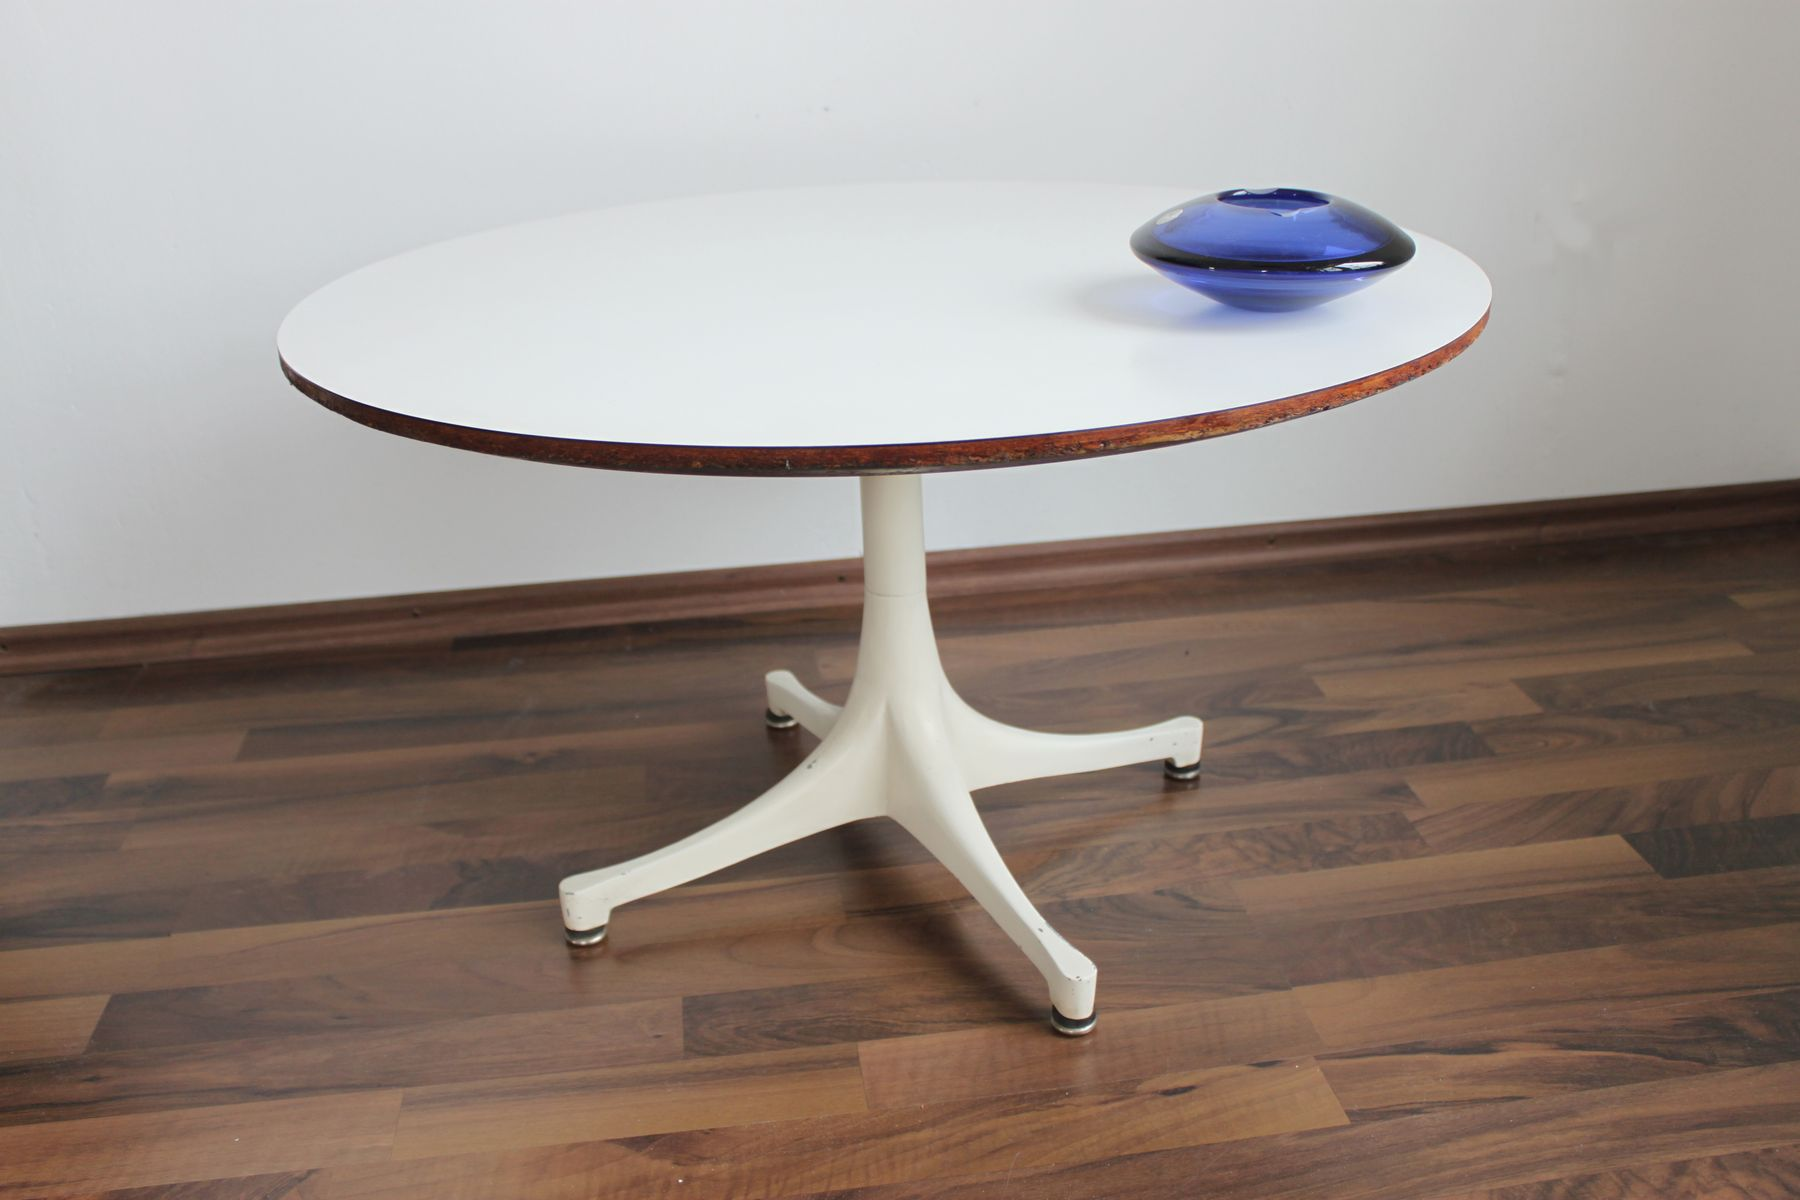 ... Side Table By George Nelson For Herman Miller 13. On Hold